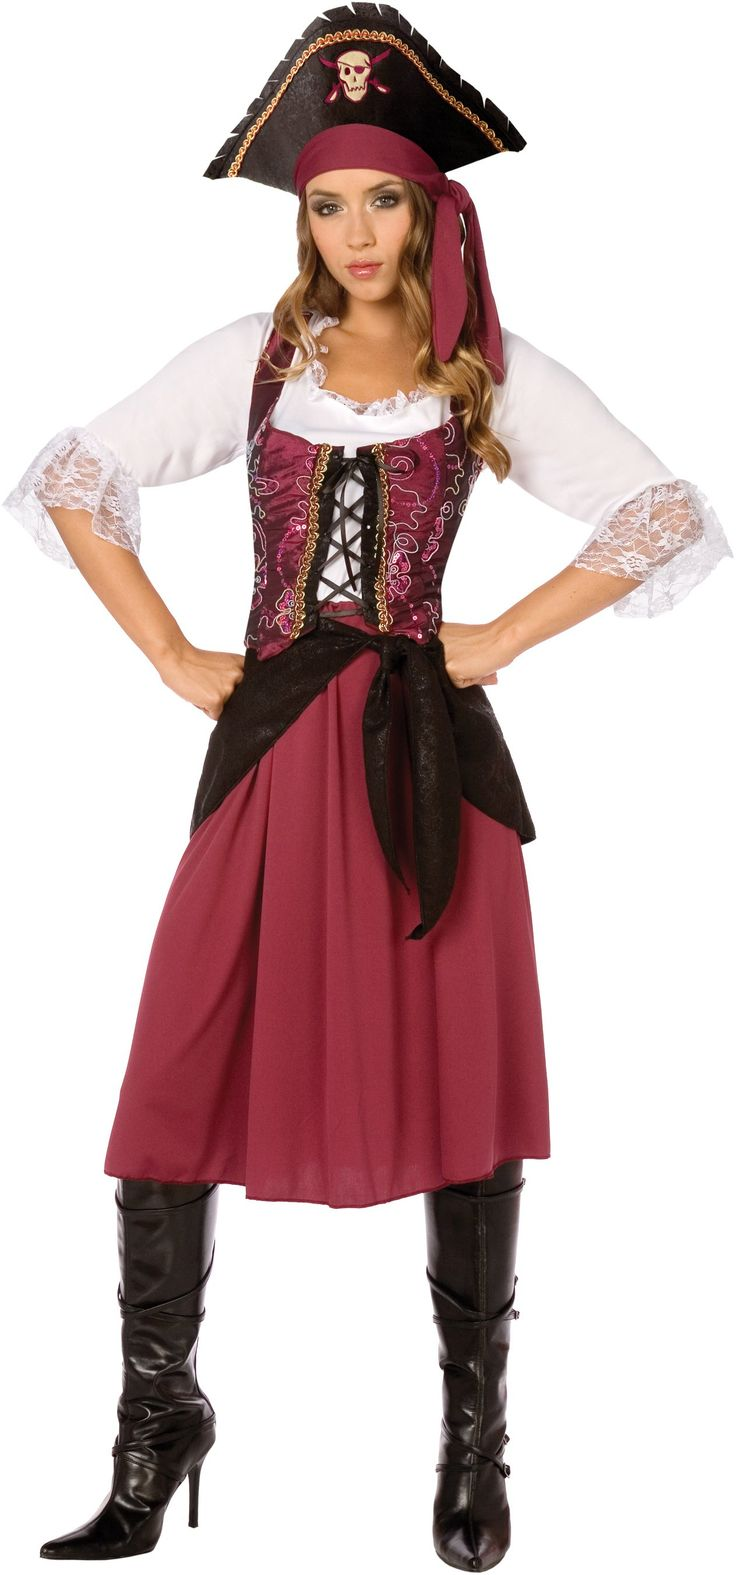 Best 20+ Pirate wench costume ideas on Pinterest | Pirate wench ...